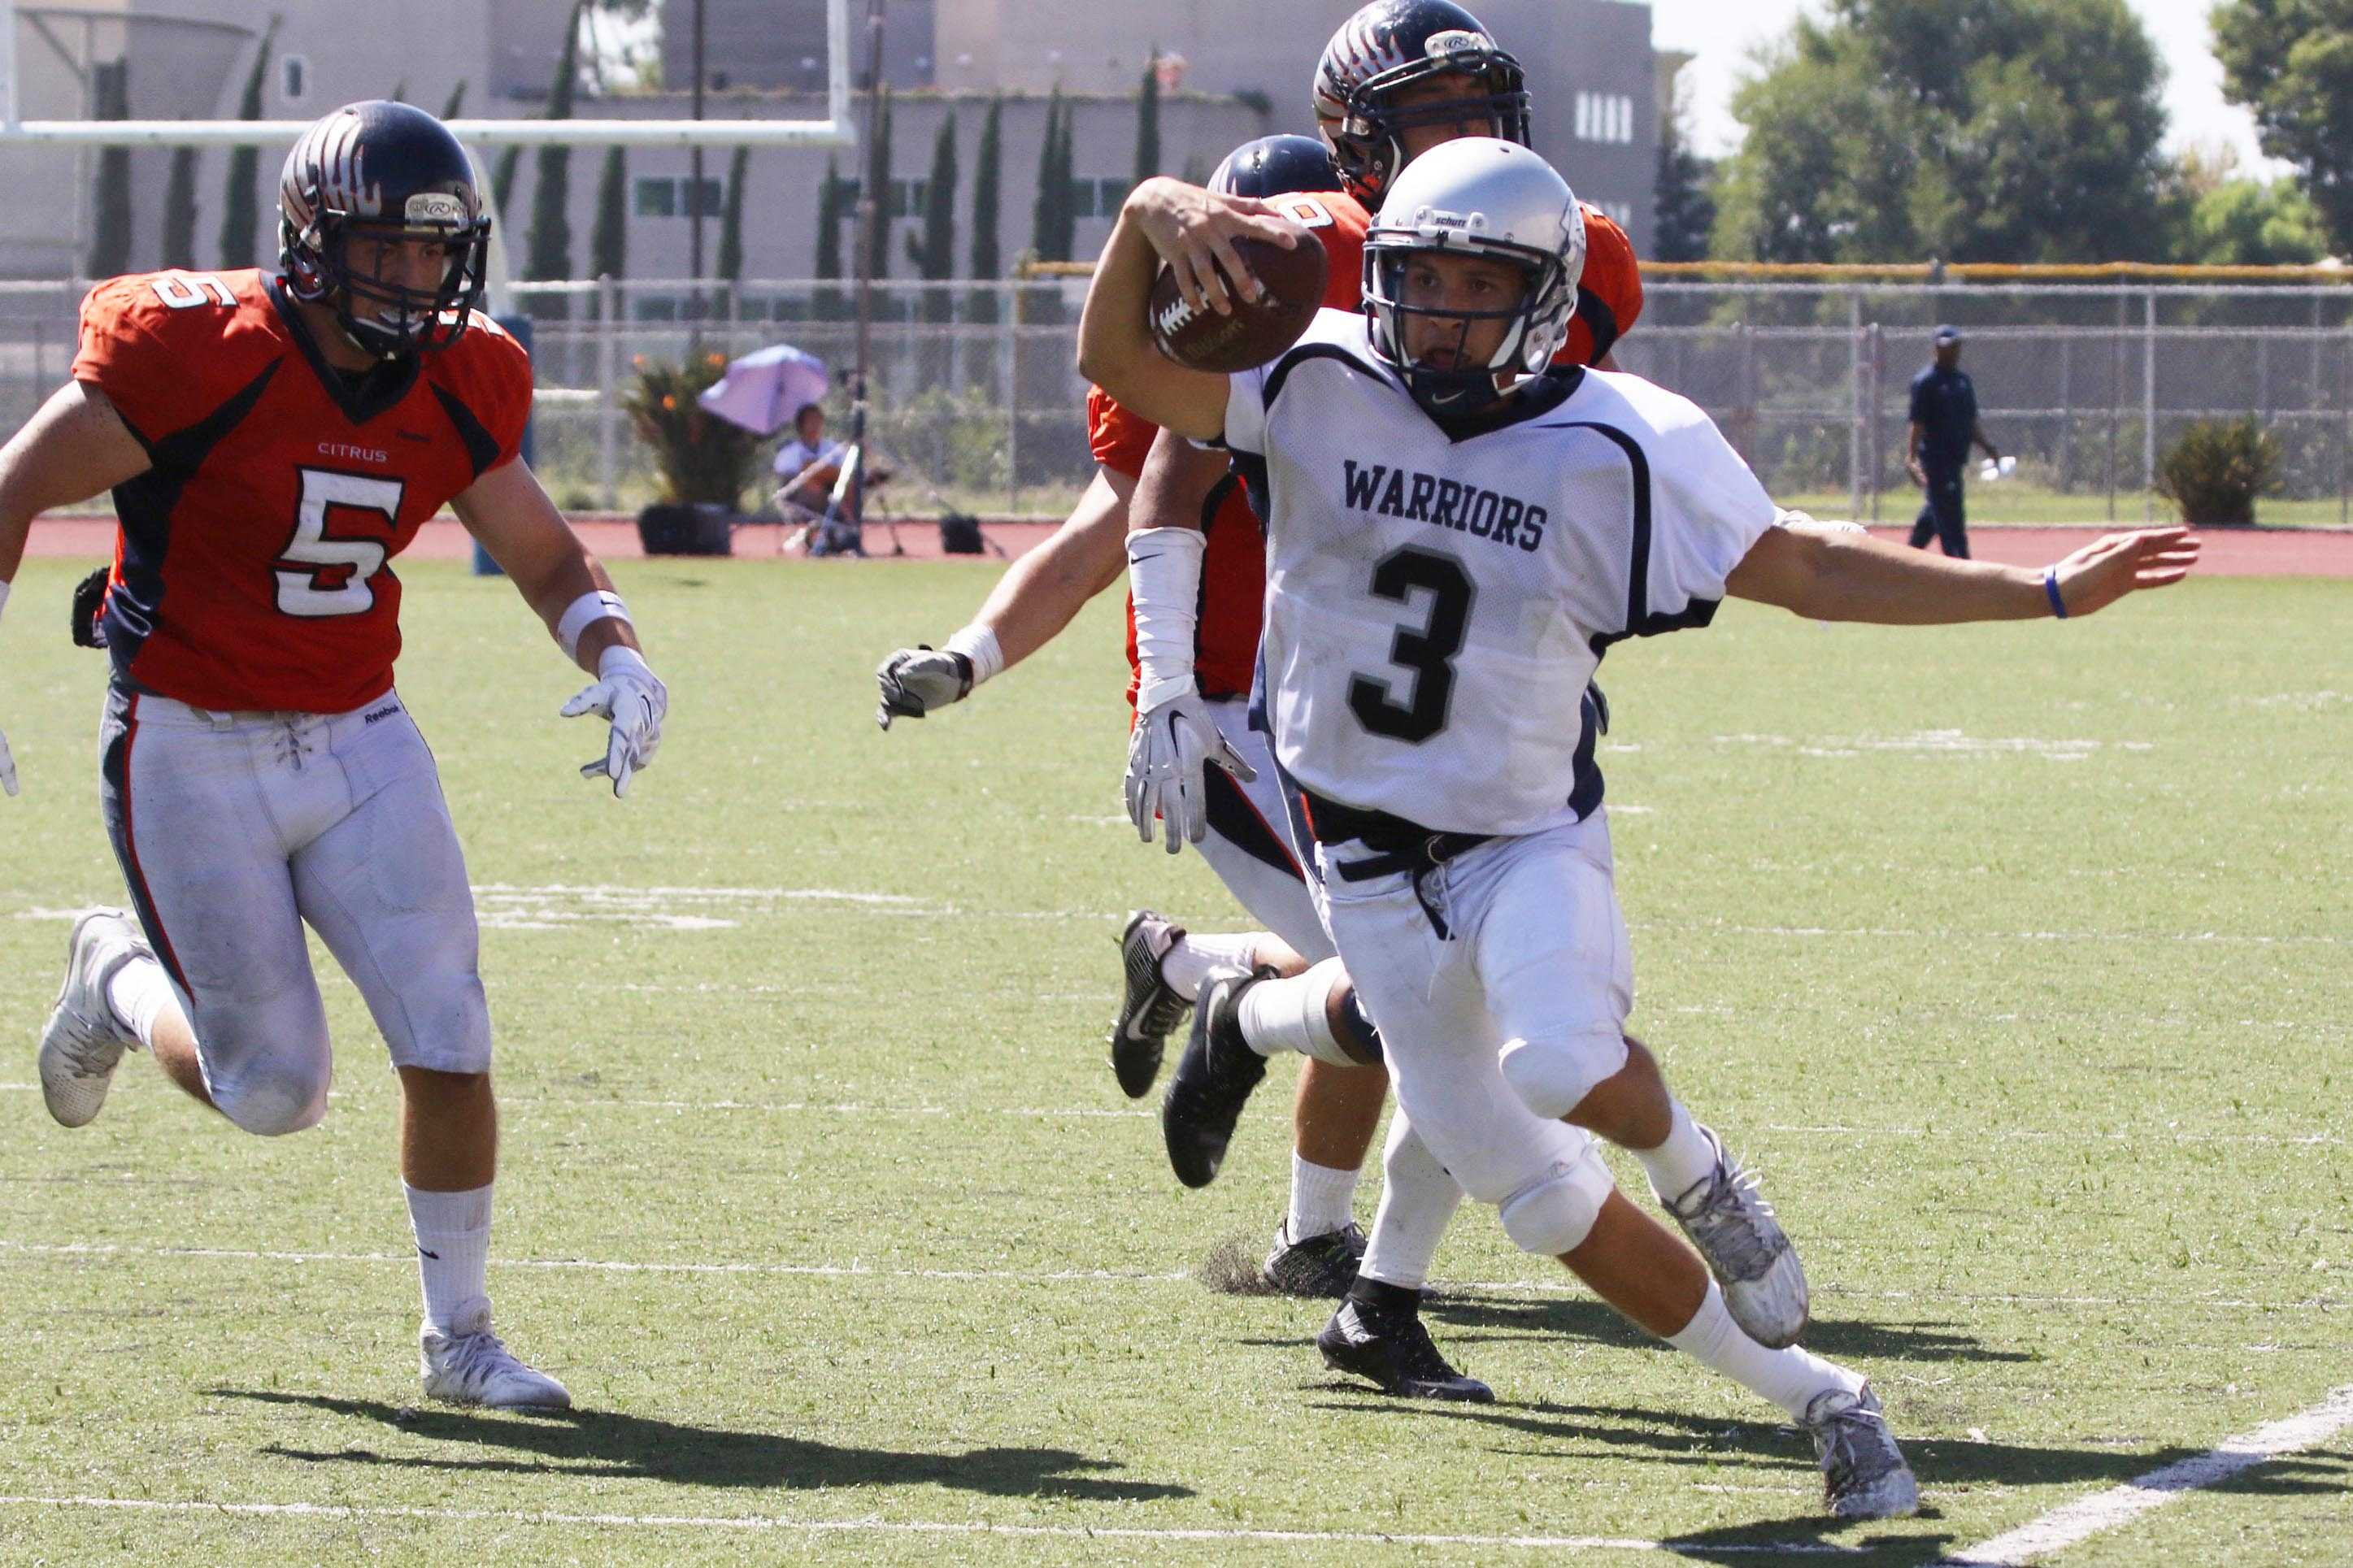 Quarterback Jorge Hernandez  makes a play with a run up field during Saturday's game at Citrus College. The Warriors defeated the Owls 23-20. Photo credit: Jackie Romano